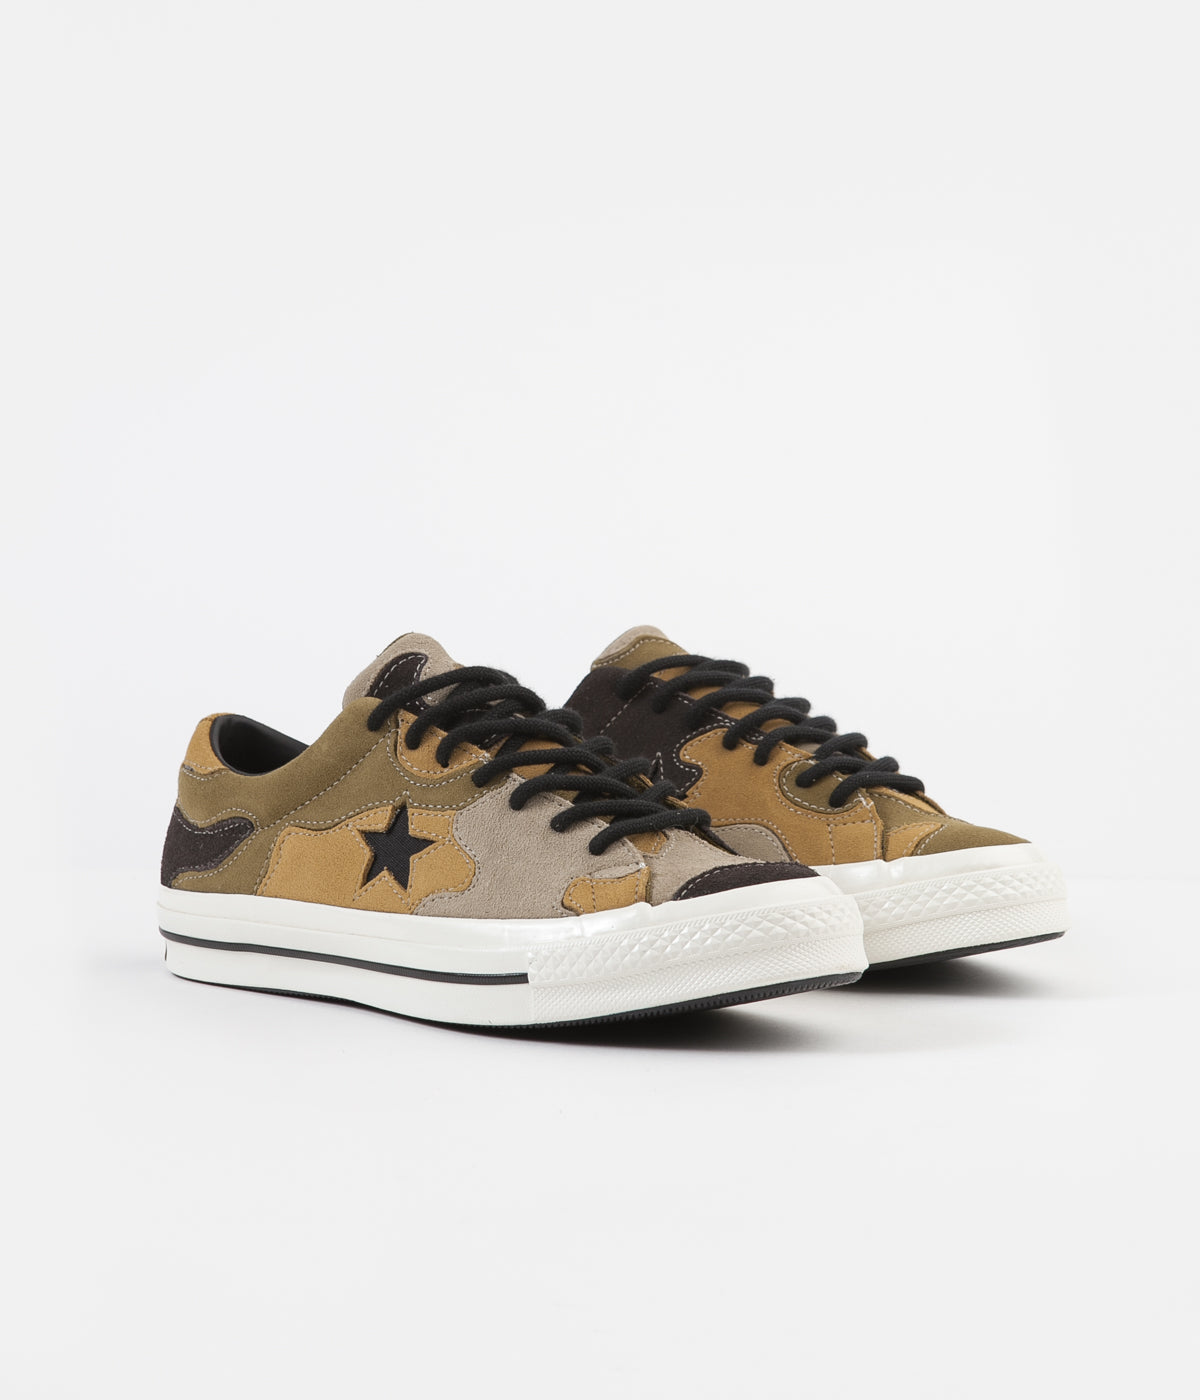 Converse One Star Ox Camo Suede Shoes - Black / Olive Flak / Wheat